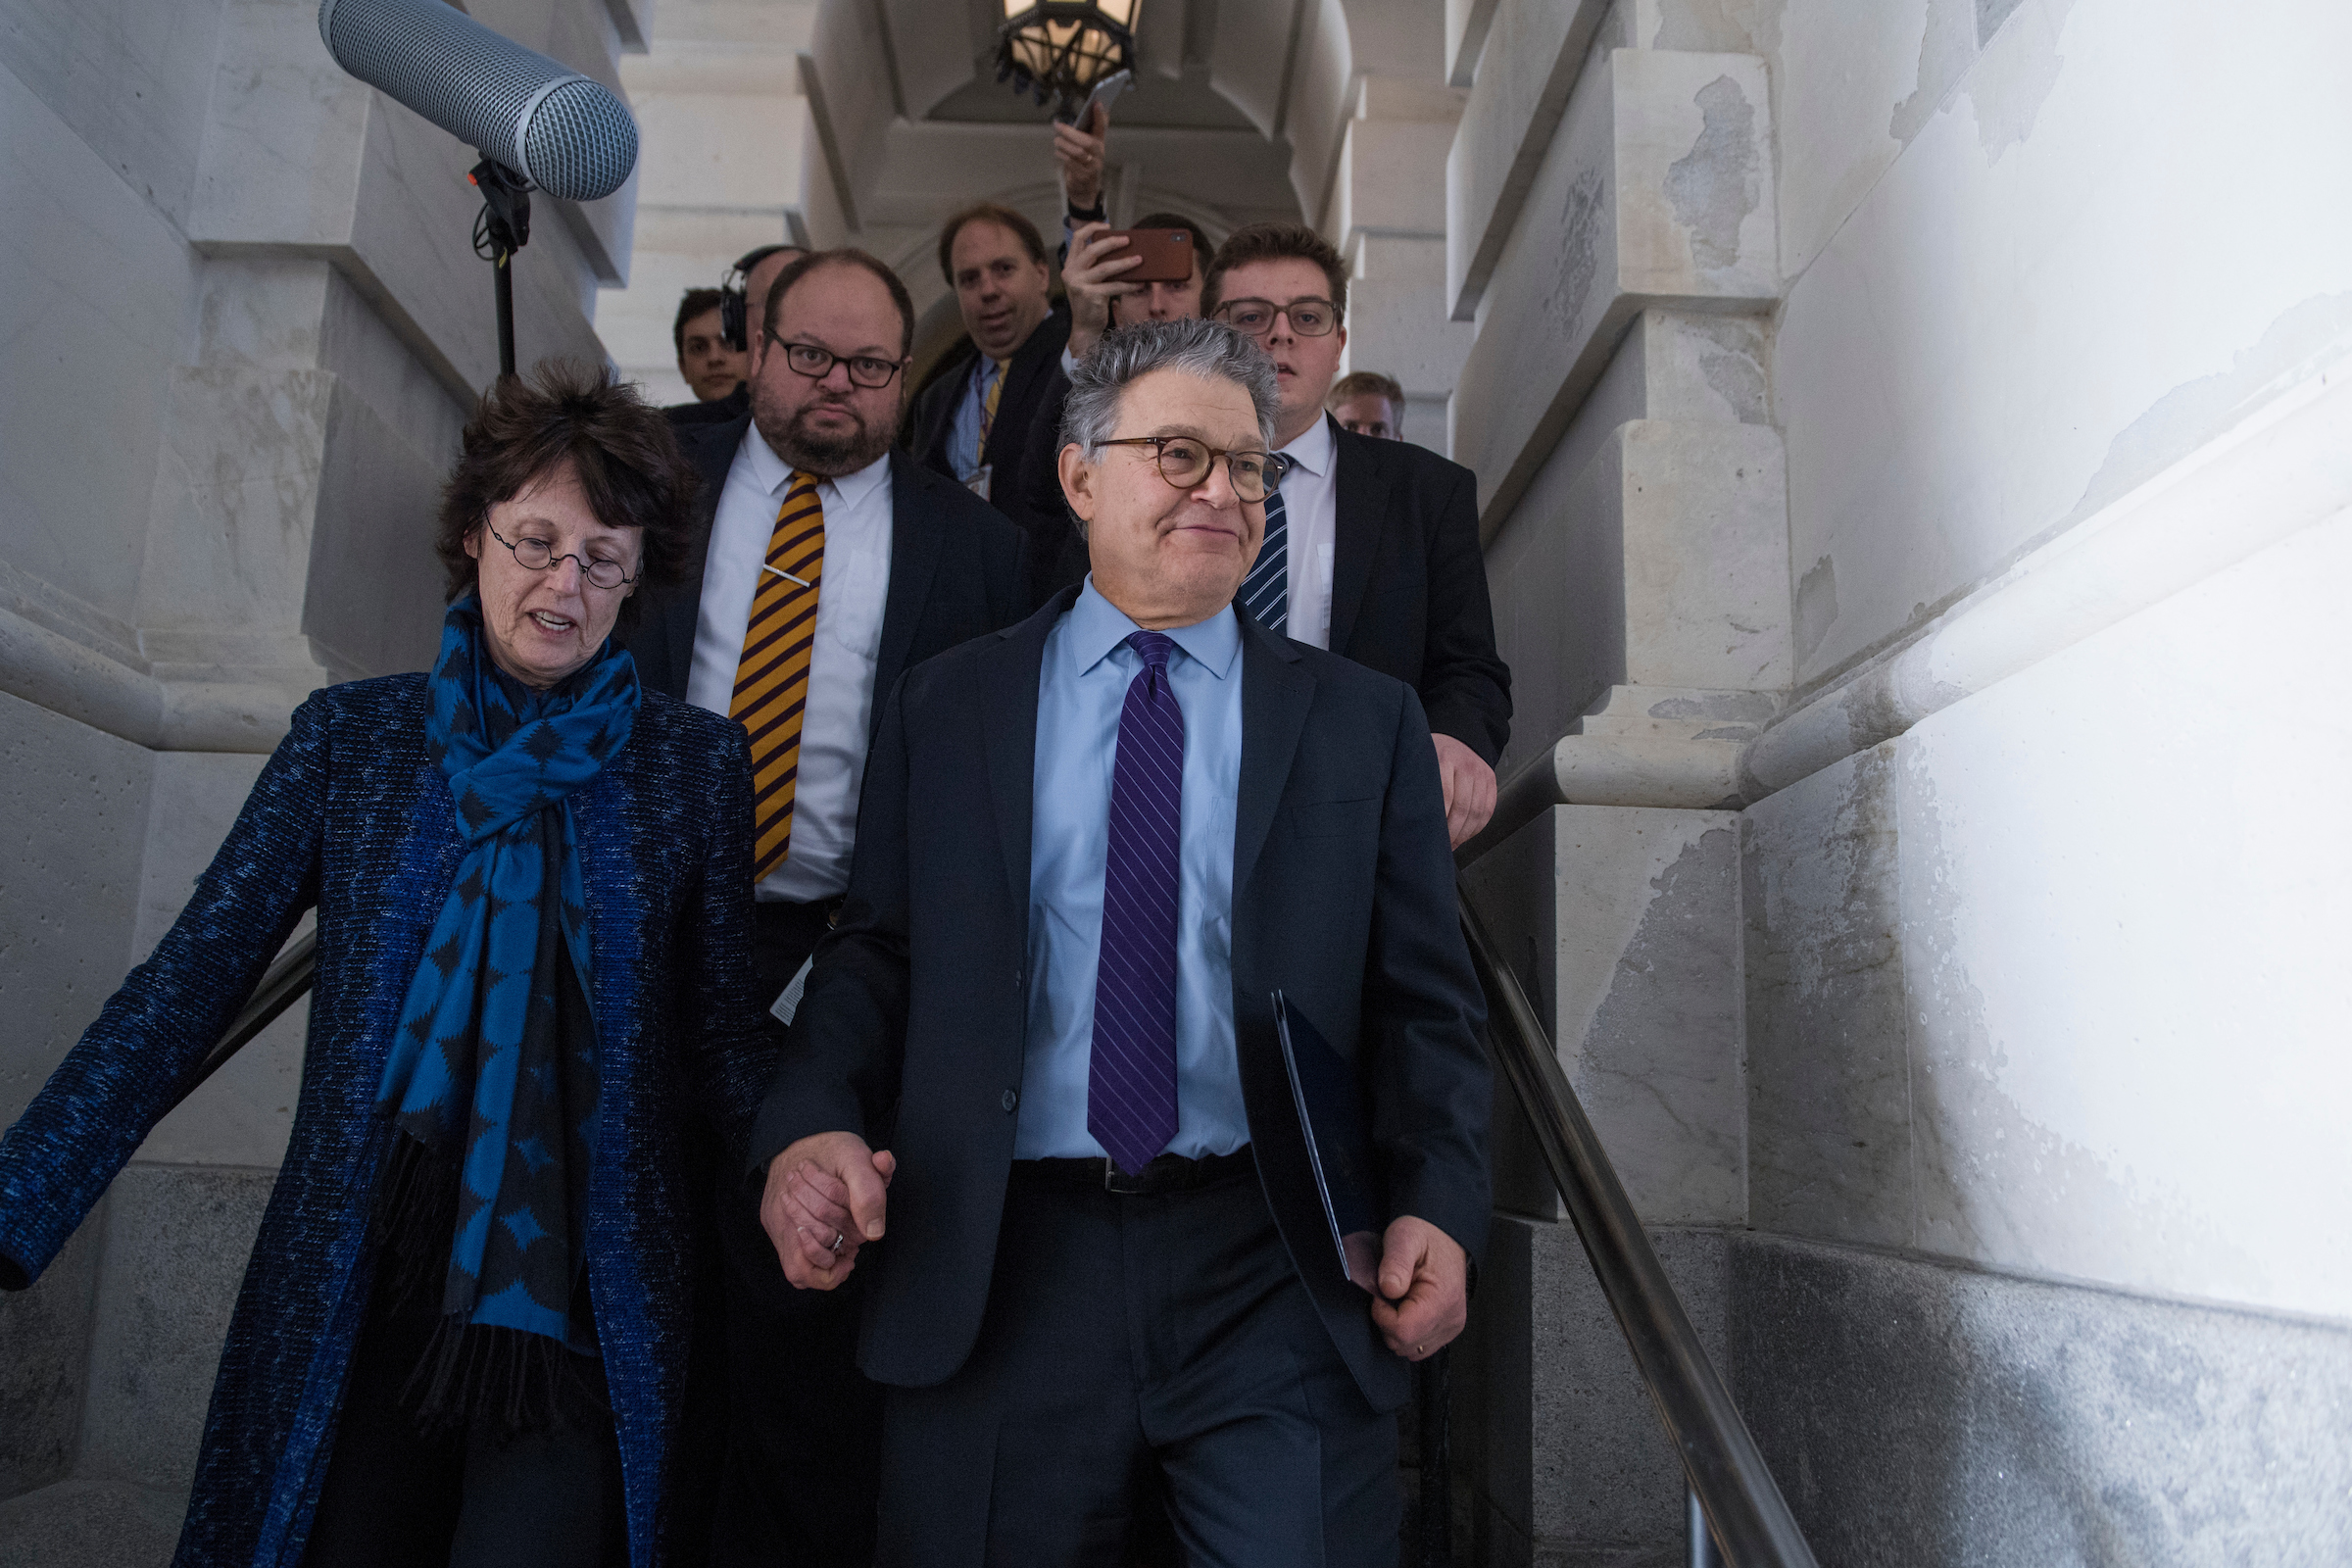 UNITED STATES - DECEMBER 07: Sen. Al Franken, D-Minn., and his wife Franni, leave the Capitol on December 7, 2017, after Franken announced on the Senate floor that he will resign his seat. (Photo By Tom Williams/CQ Roll Call)